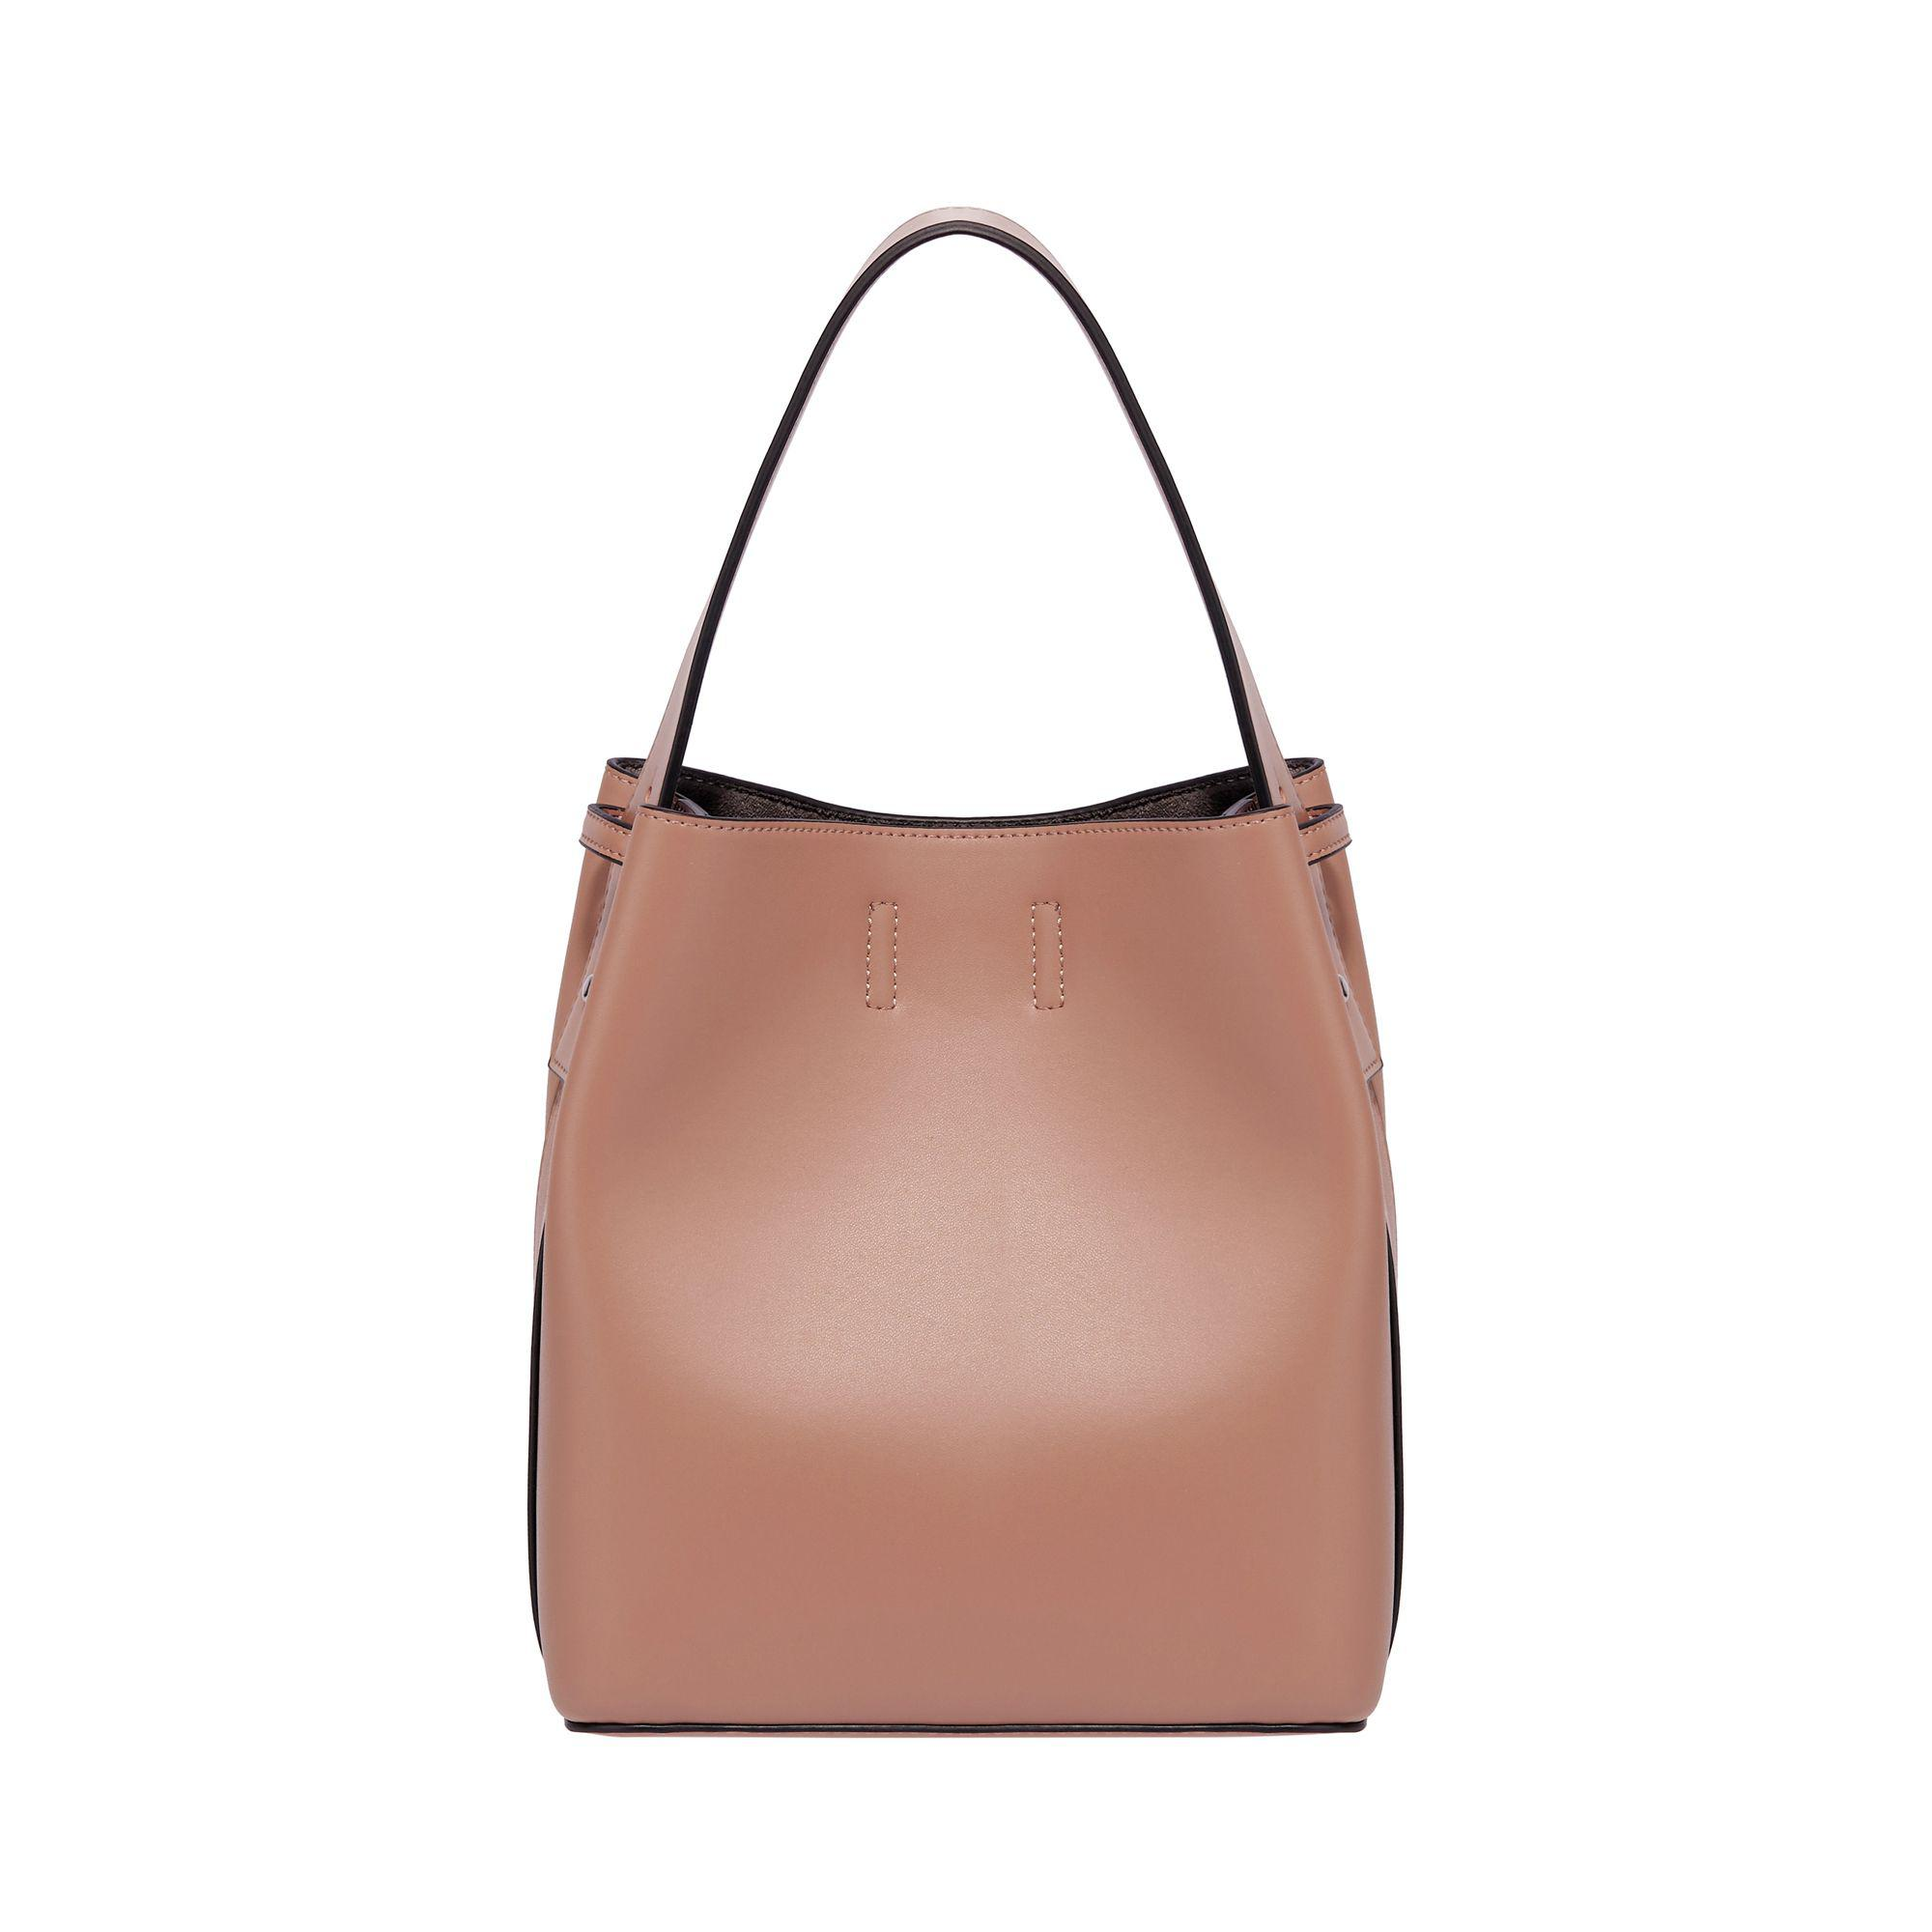 2a21567bda Fiorelli Taupe Fae Small Grab Bag in Brown - Lyst